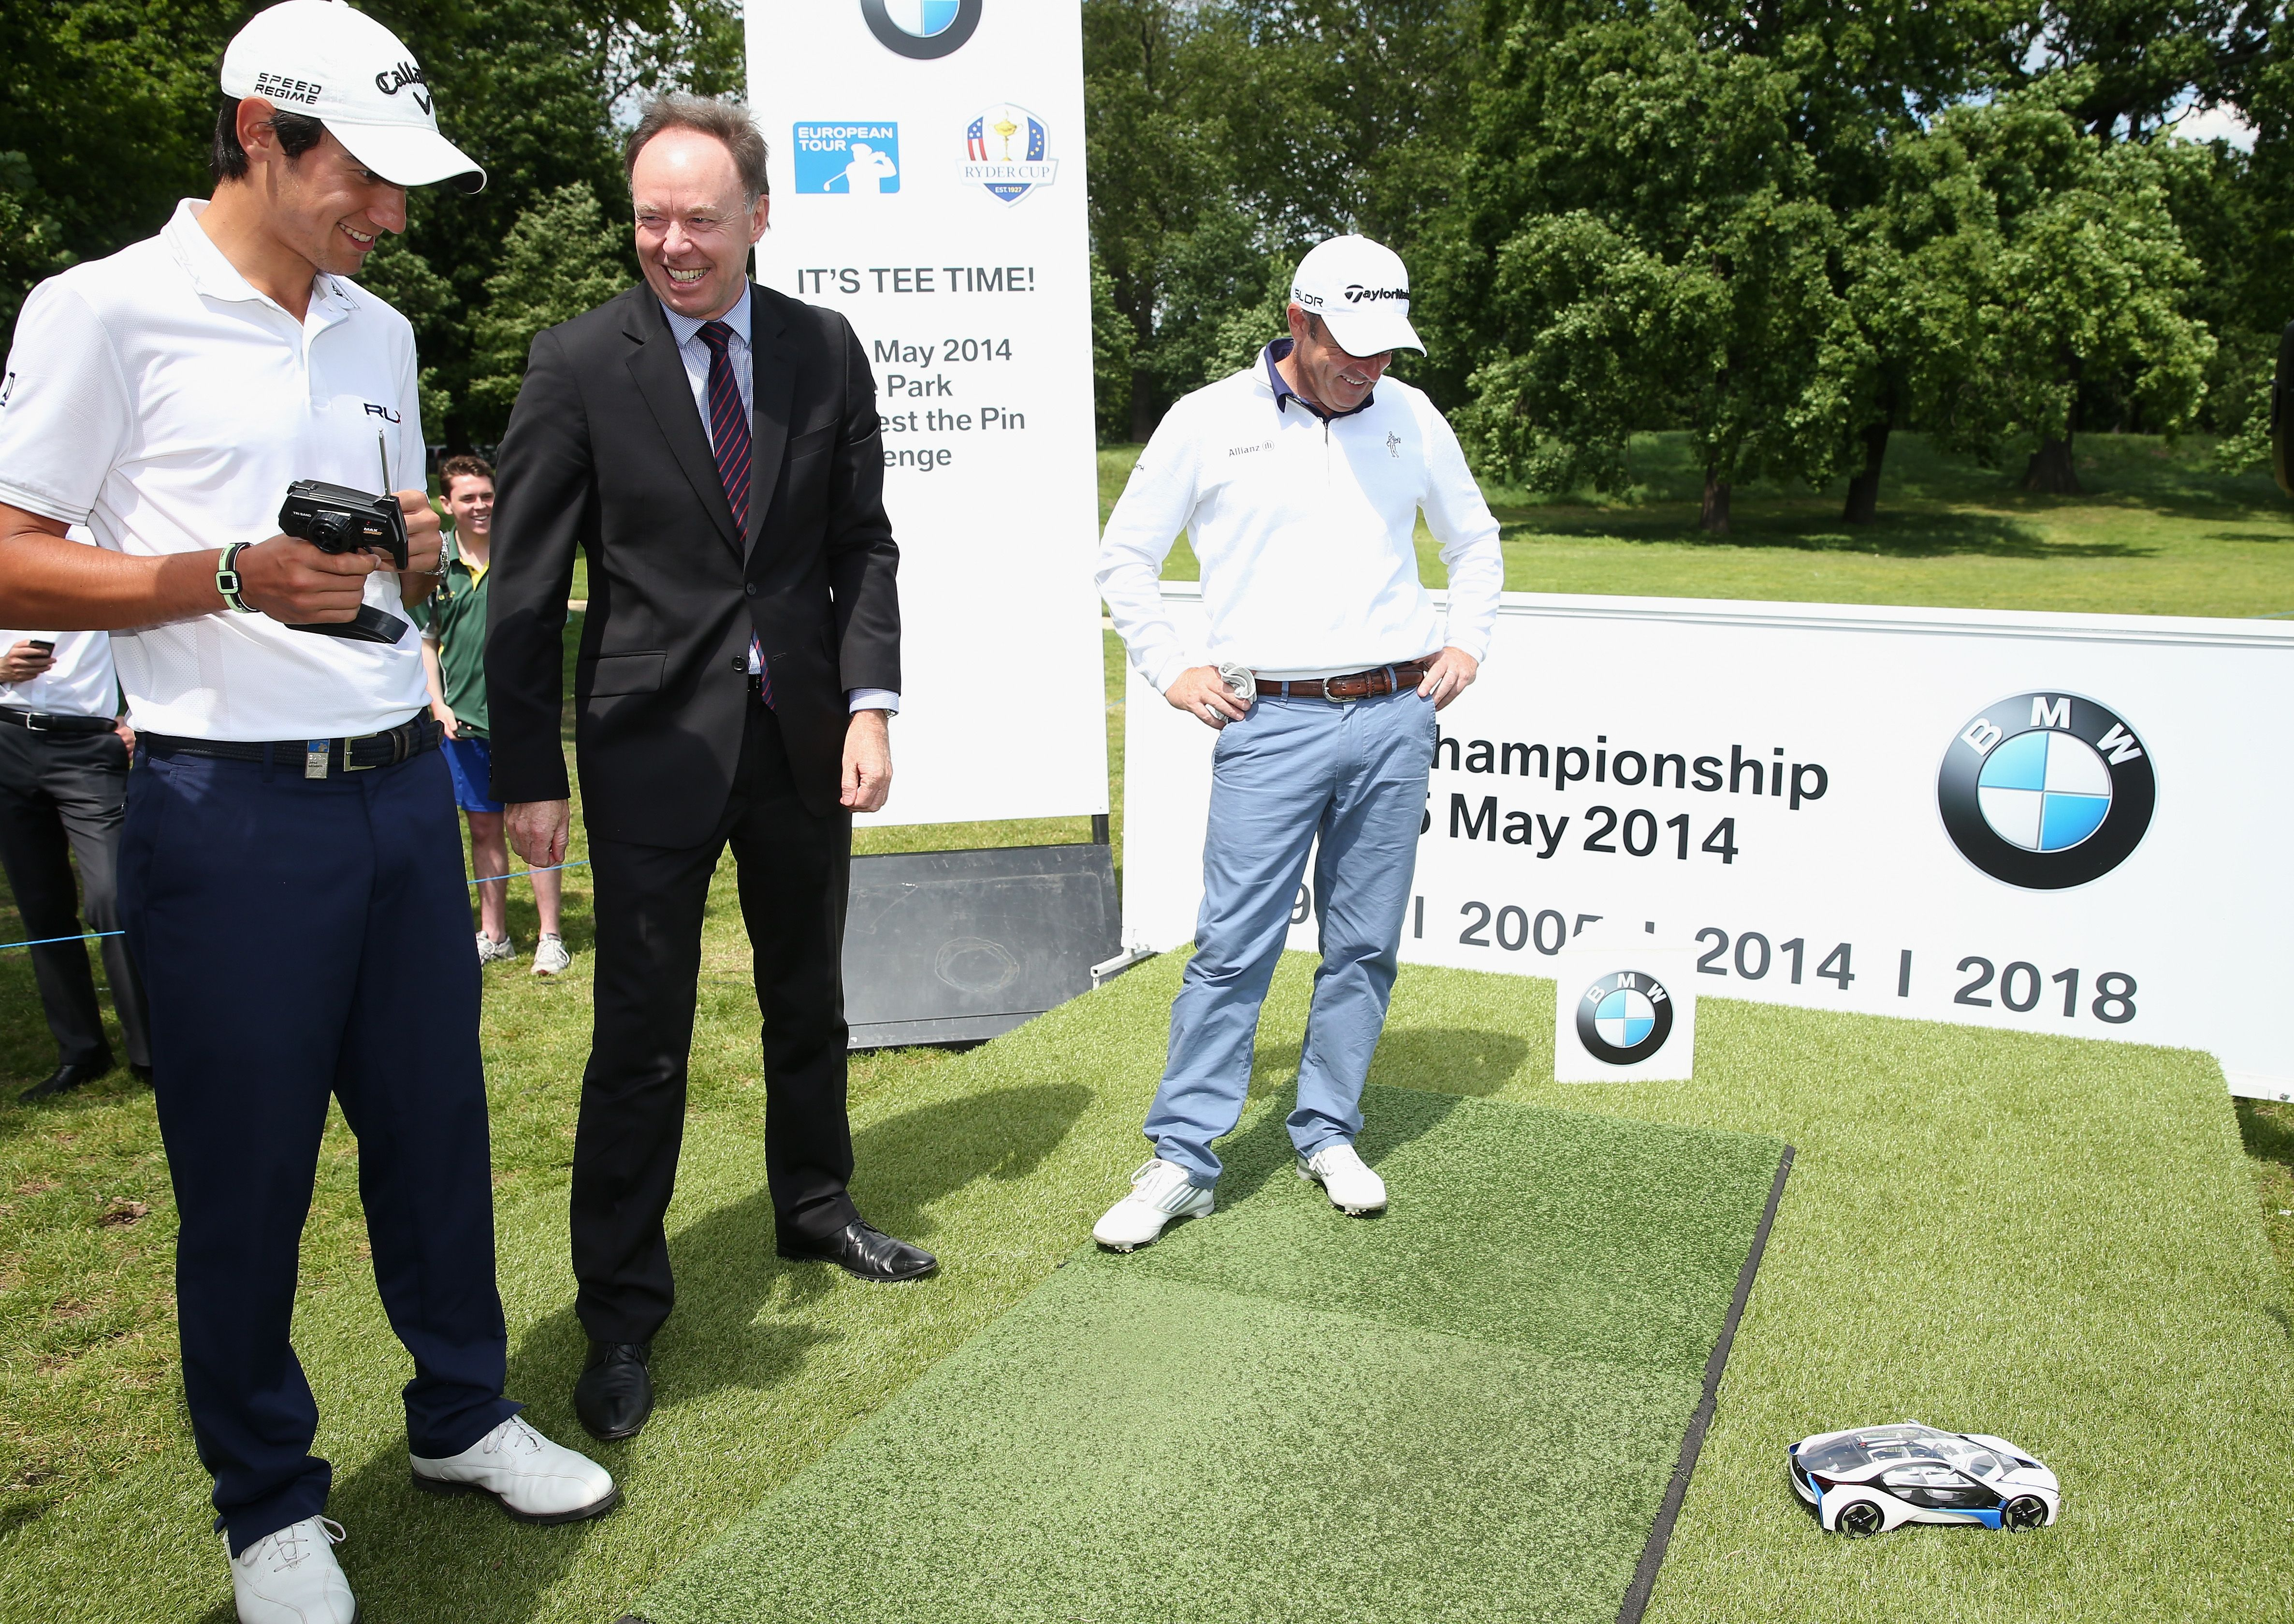 Bmw Pga Championship Tee Time In London S Iconic Hyde Park Testing Their Other Driving Skills Tees Time Bmw Golf Pga Championship